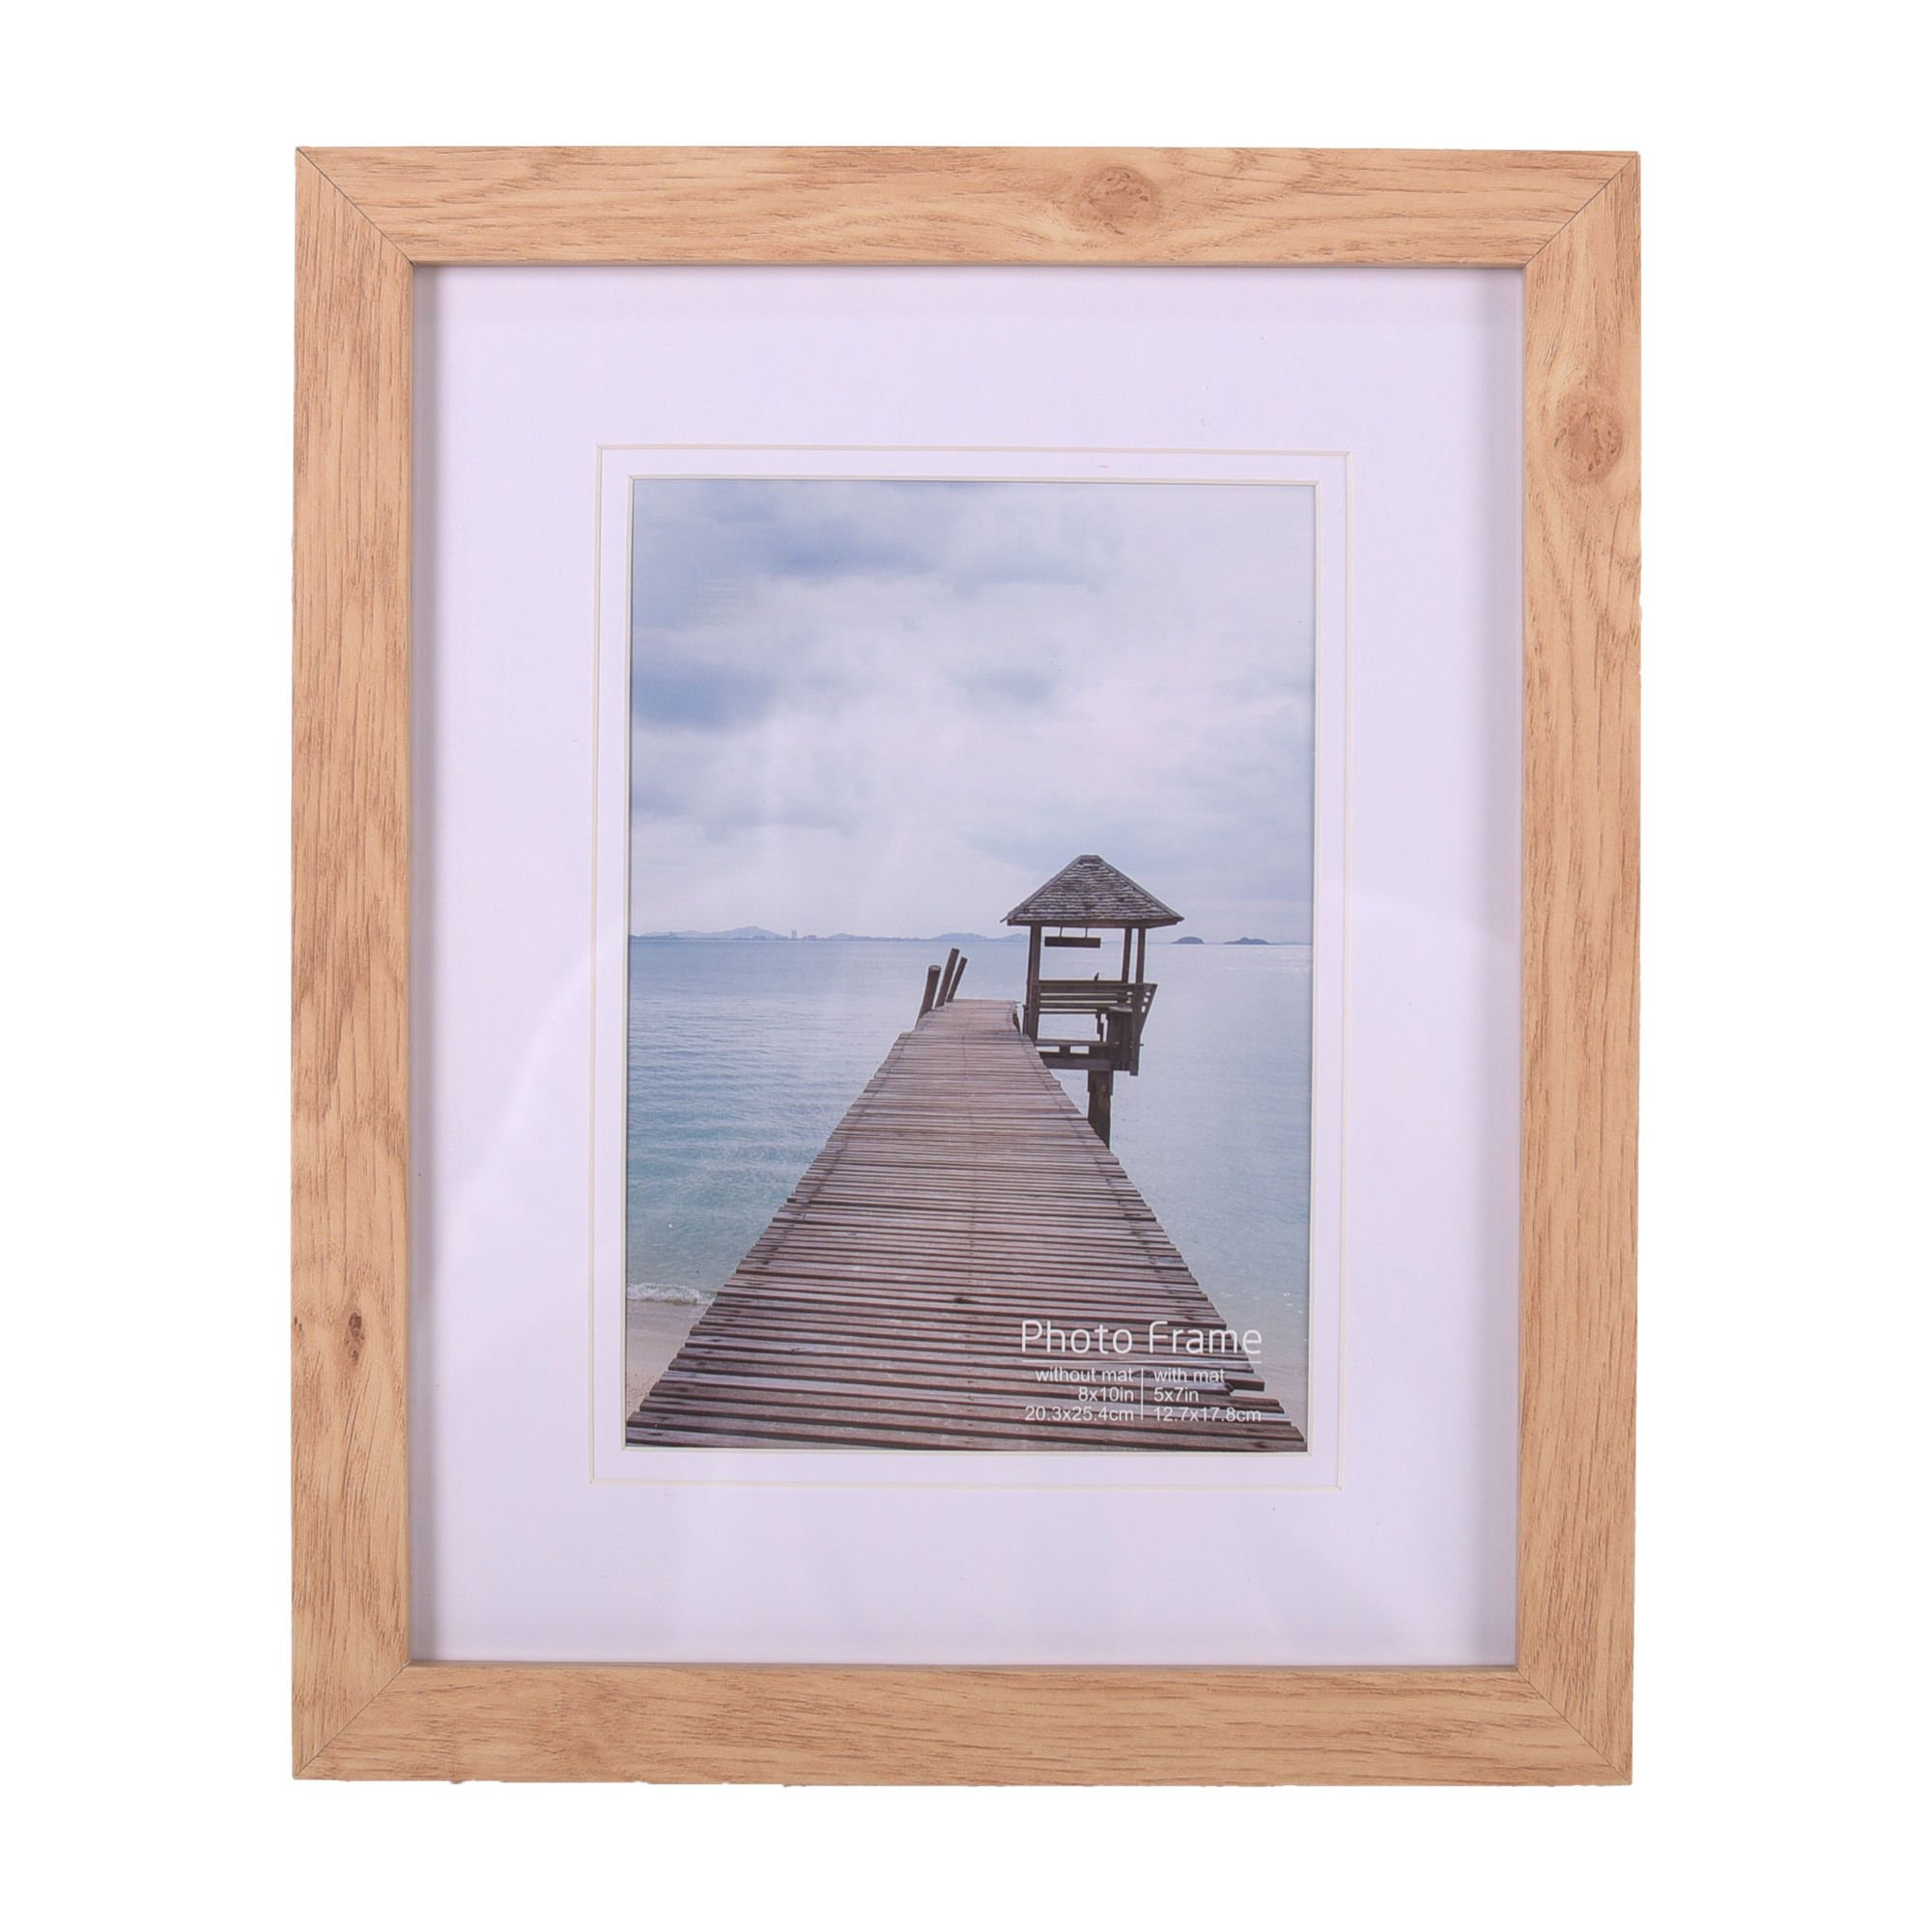 Amazon Top Selling 4x6 5x7 8x10 Art Work Natural Wood Color MDF Wooden Photo Frame